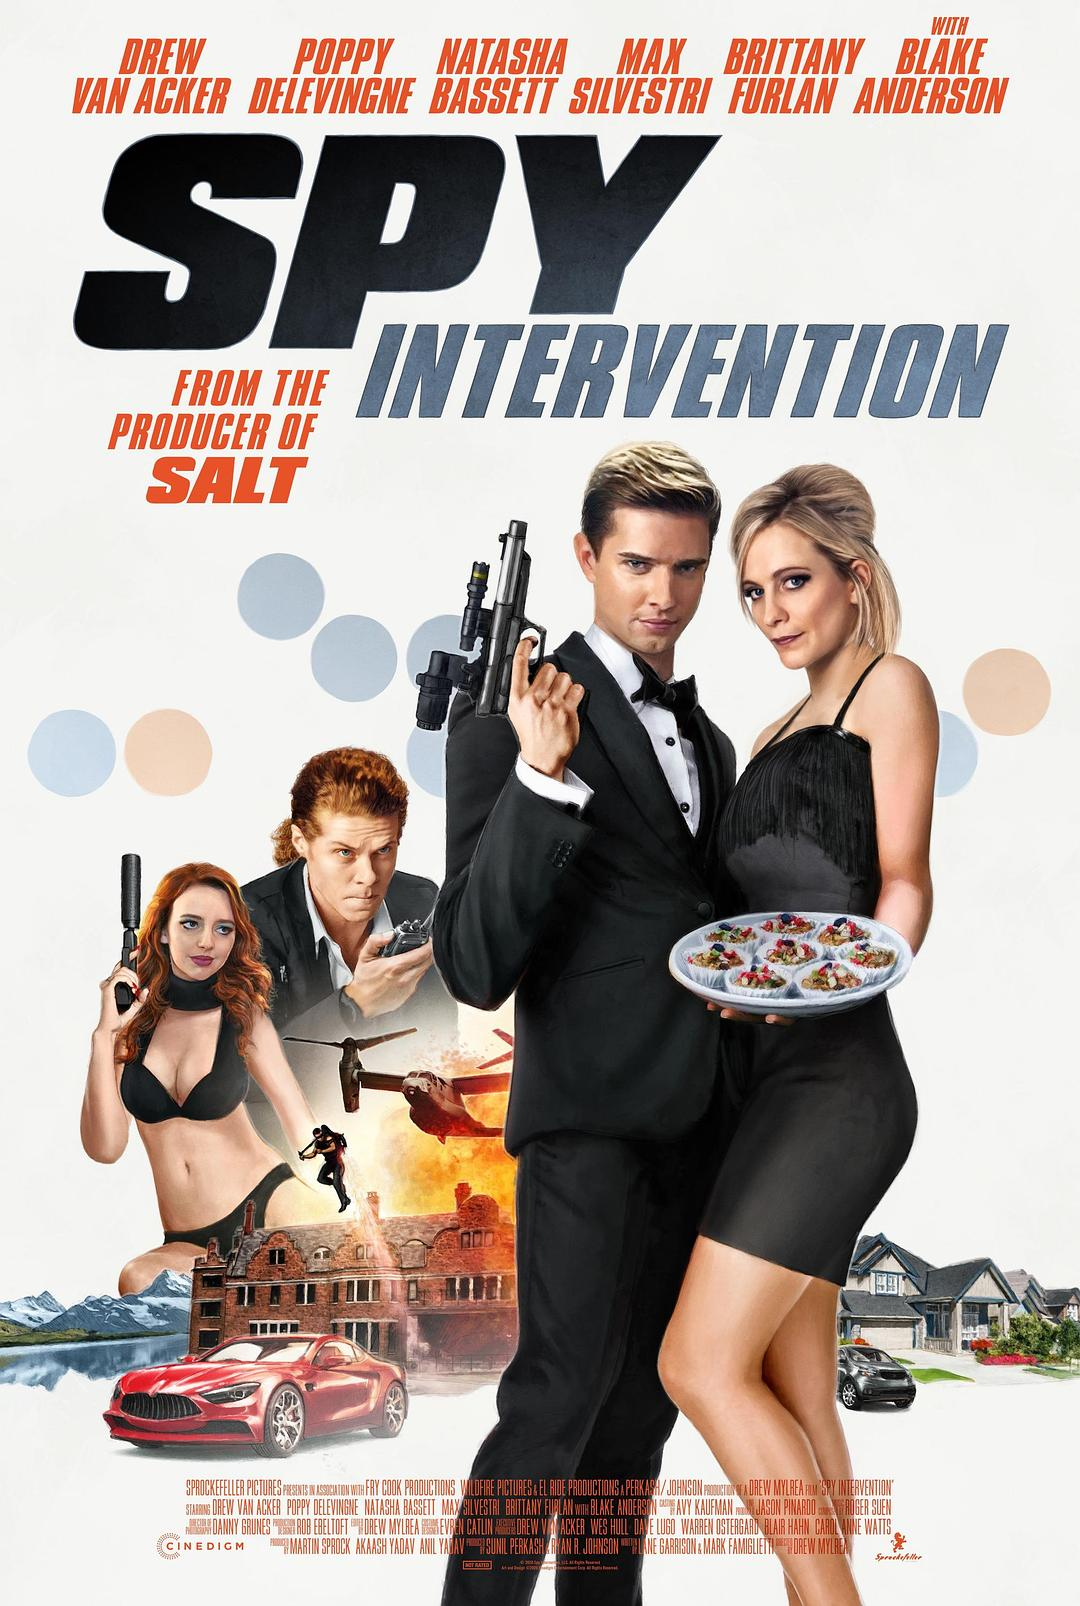 悠悠MP4_MP4电影下载_间谍干涉/间谍本色 Spy.Intervention.2020.1080p.WEBRip.x264-RARBG 1.77GB